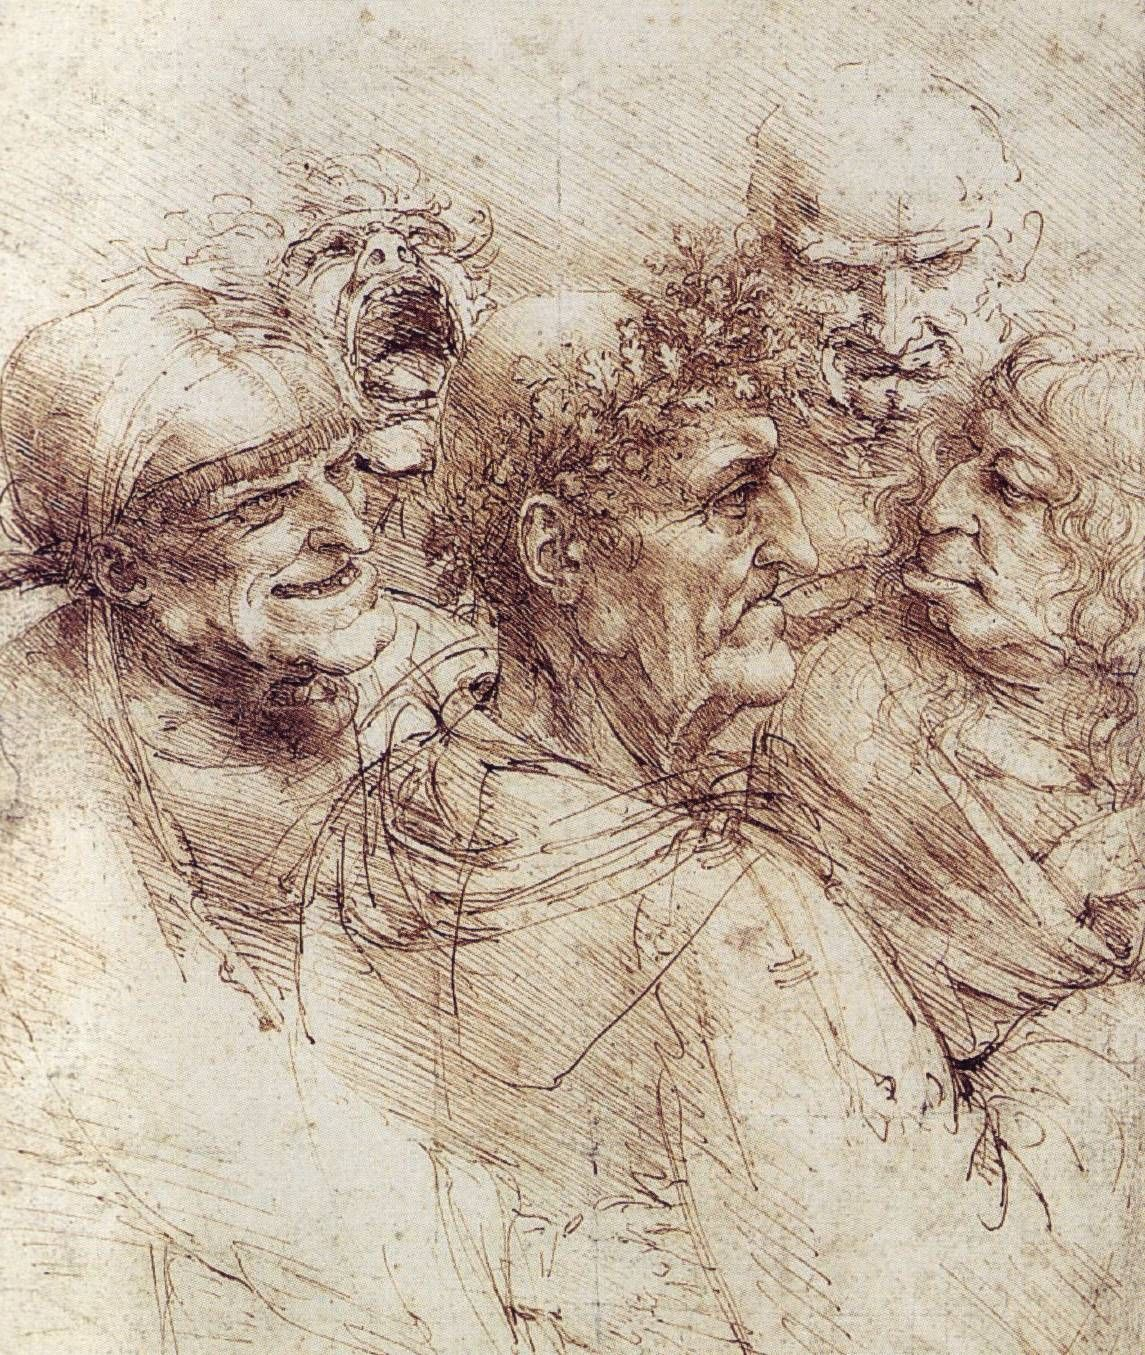 da vinci is one of my all time favorite artist because he was also leonardo da vinci one of the most impressive examples of intricate cross hatching is his old men sketch it is the clearest example in this list and